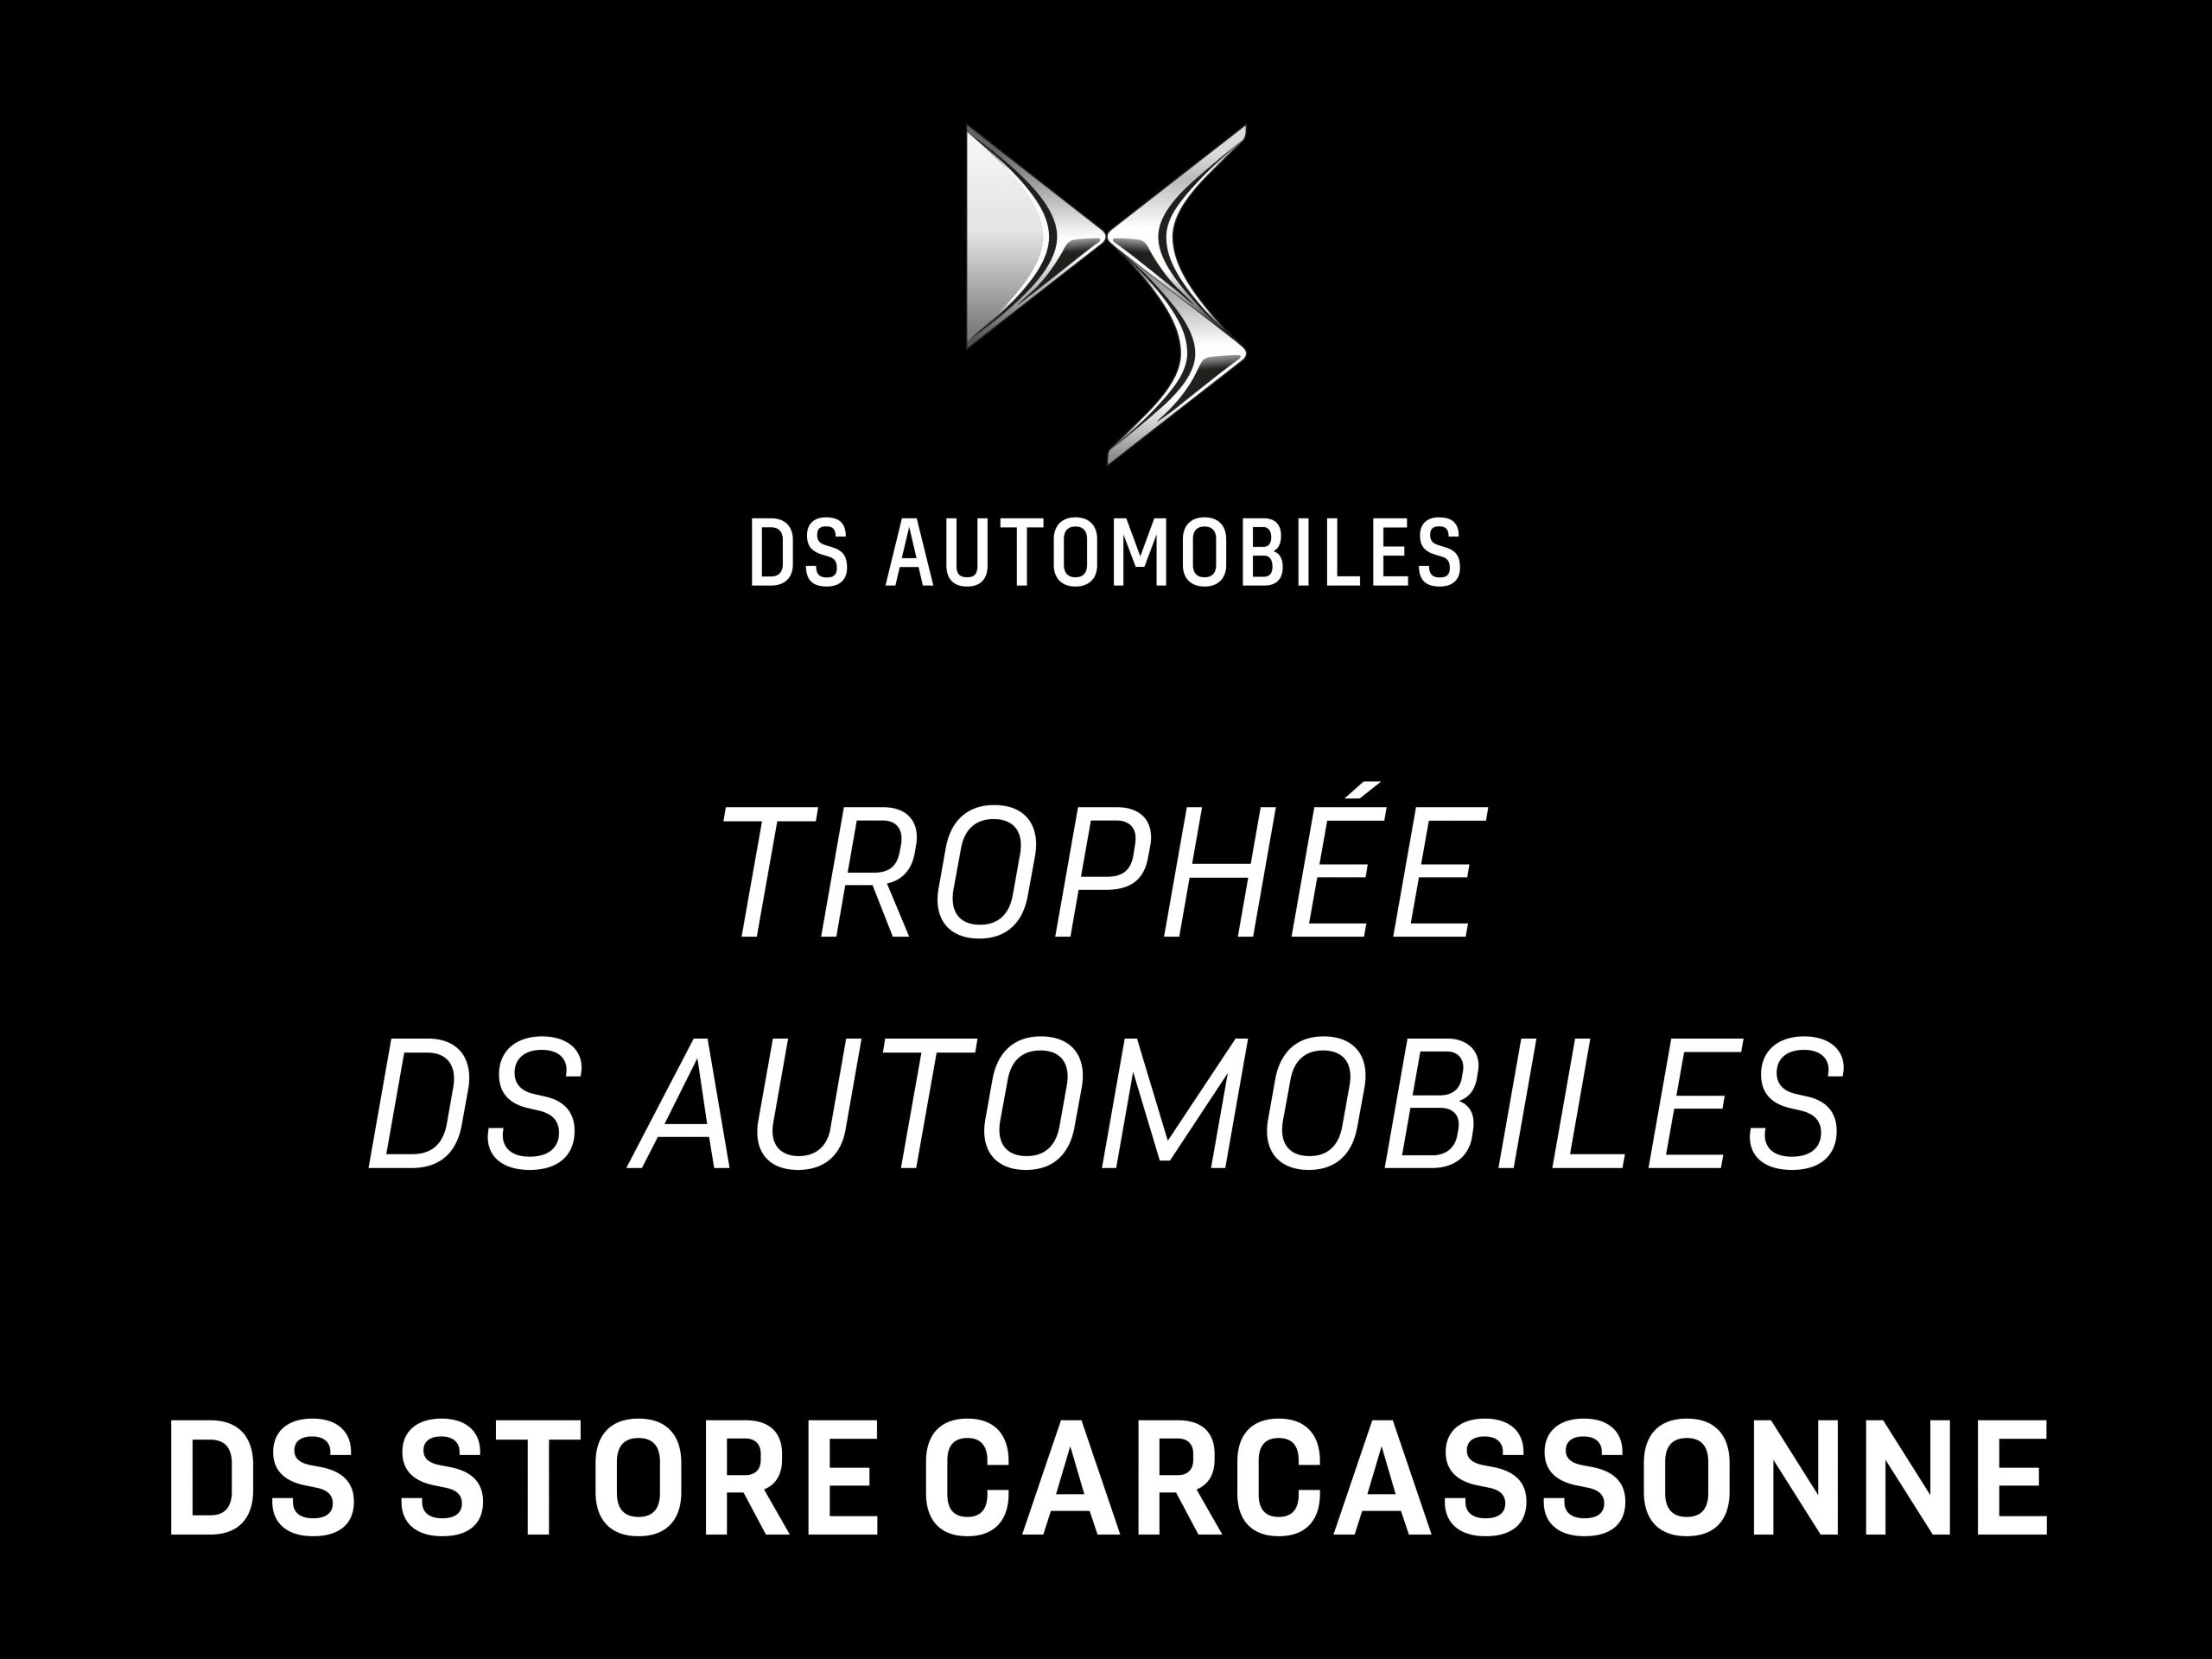 DS STORE CARCASSONNE